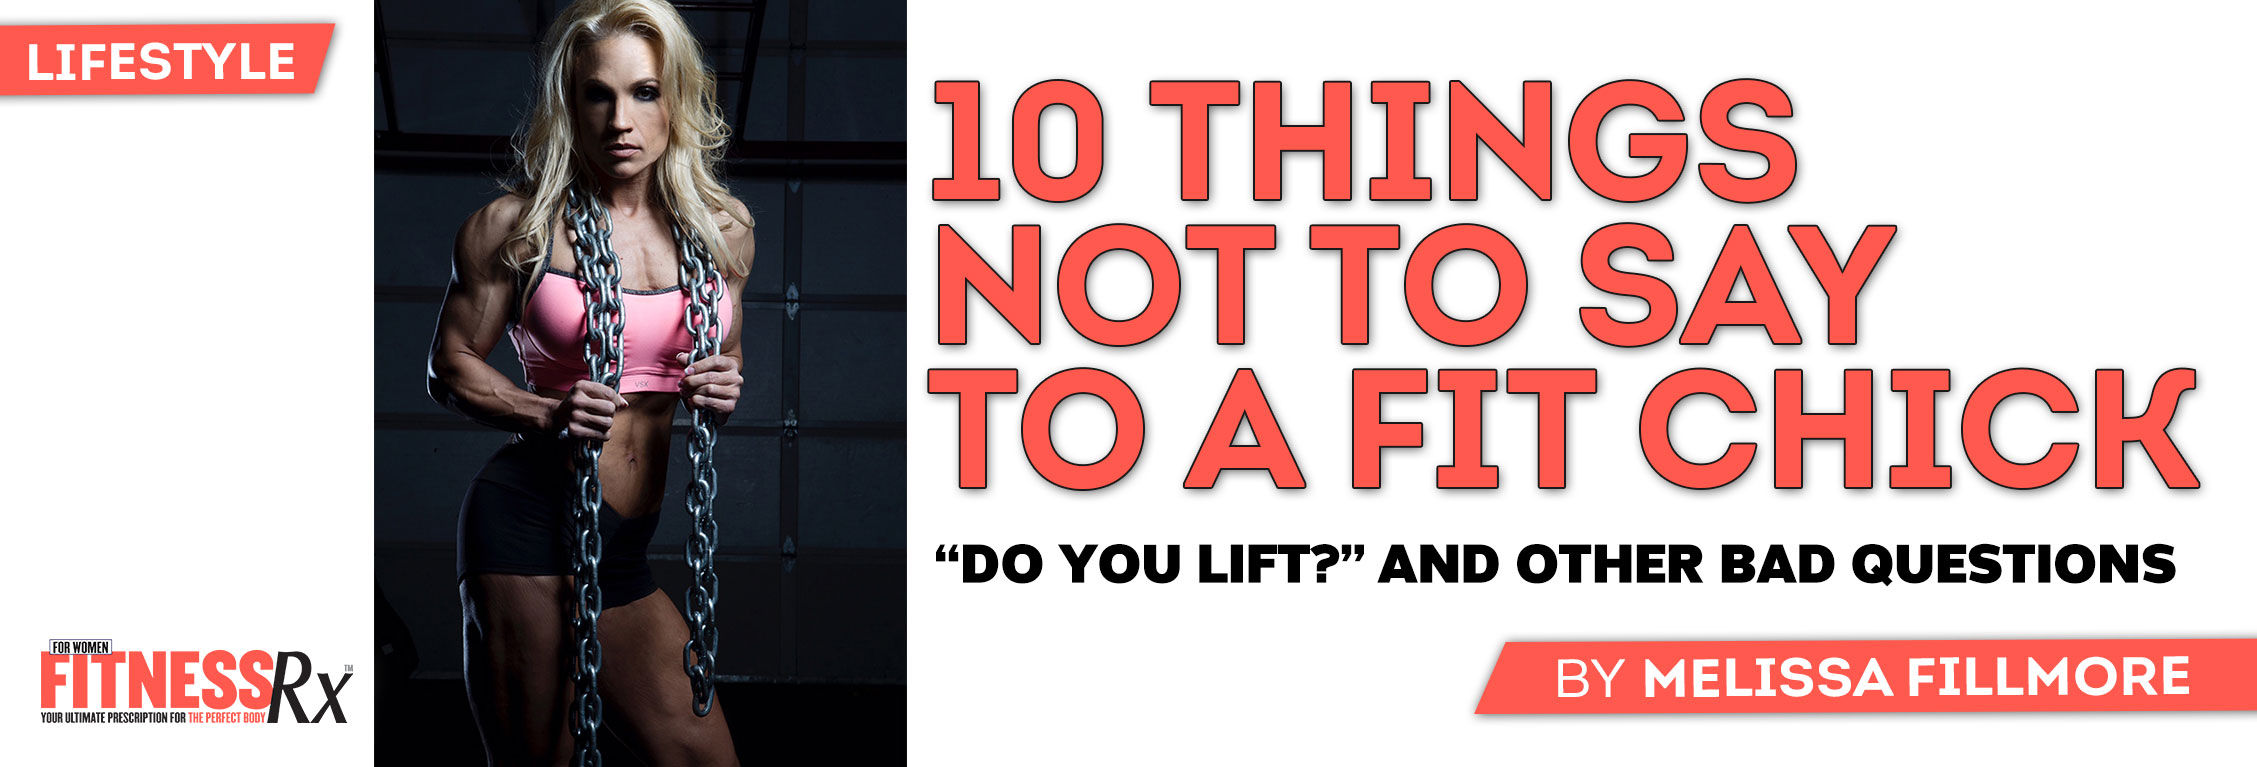 10 Things NOT to Say to a Fit Chick